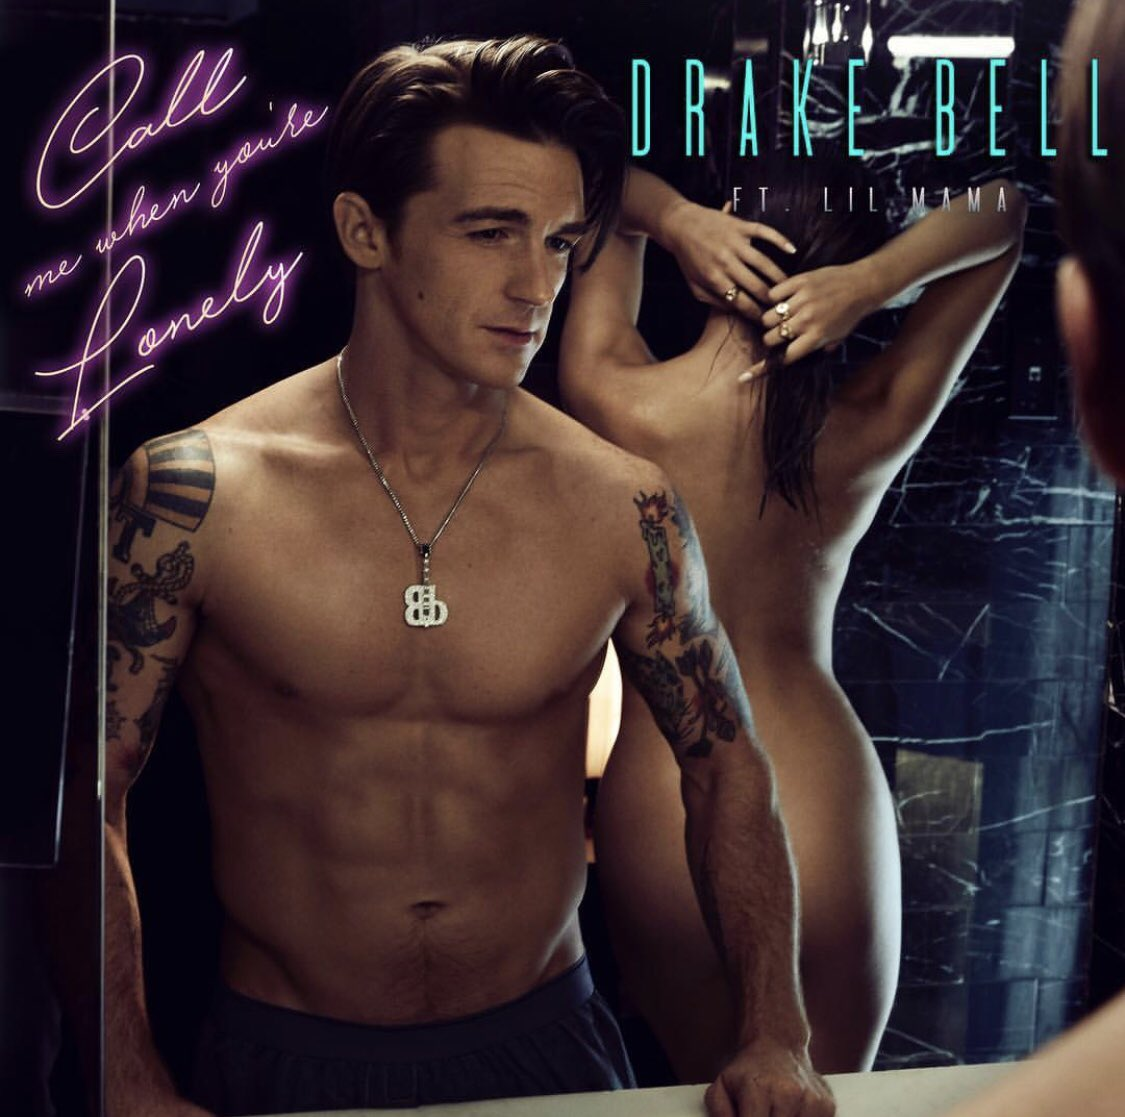 Replying to @DrakeBell: Call Me When You're Lonely 818-900-9678